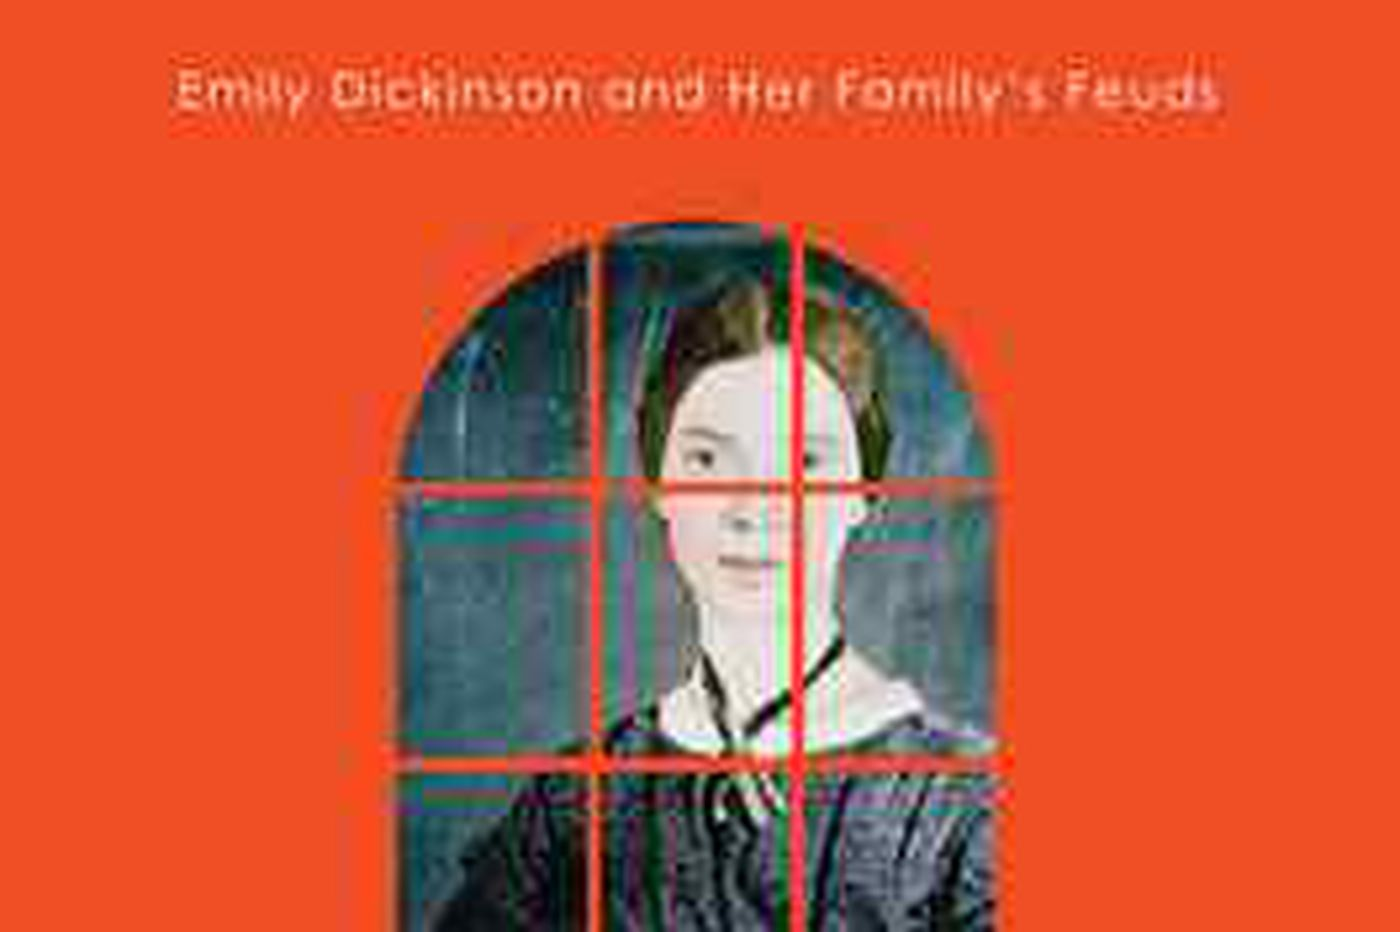 A different sort of Emily Dickinson, epileptic too